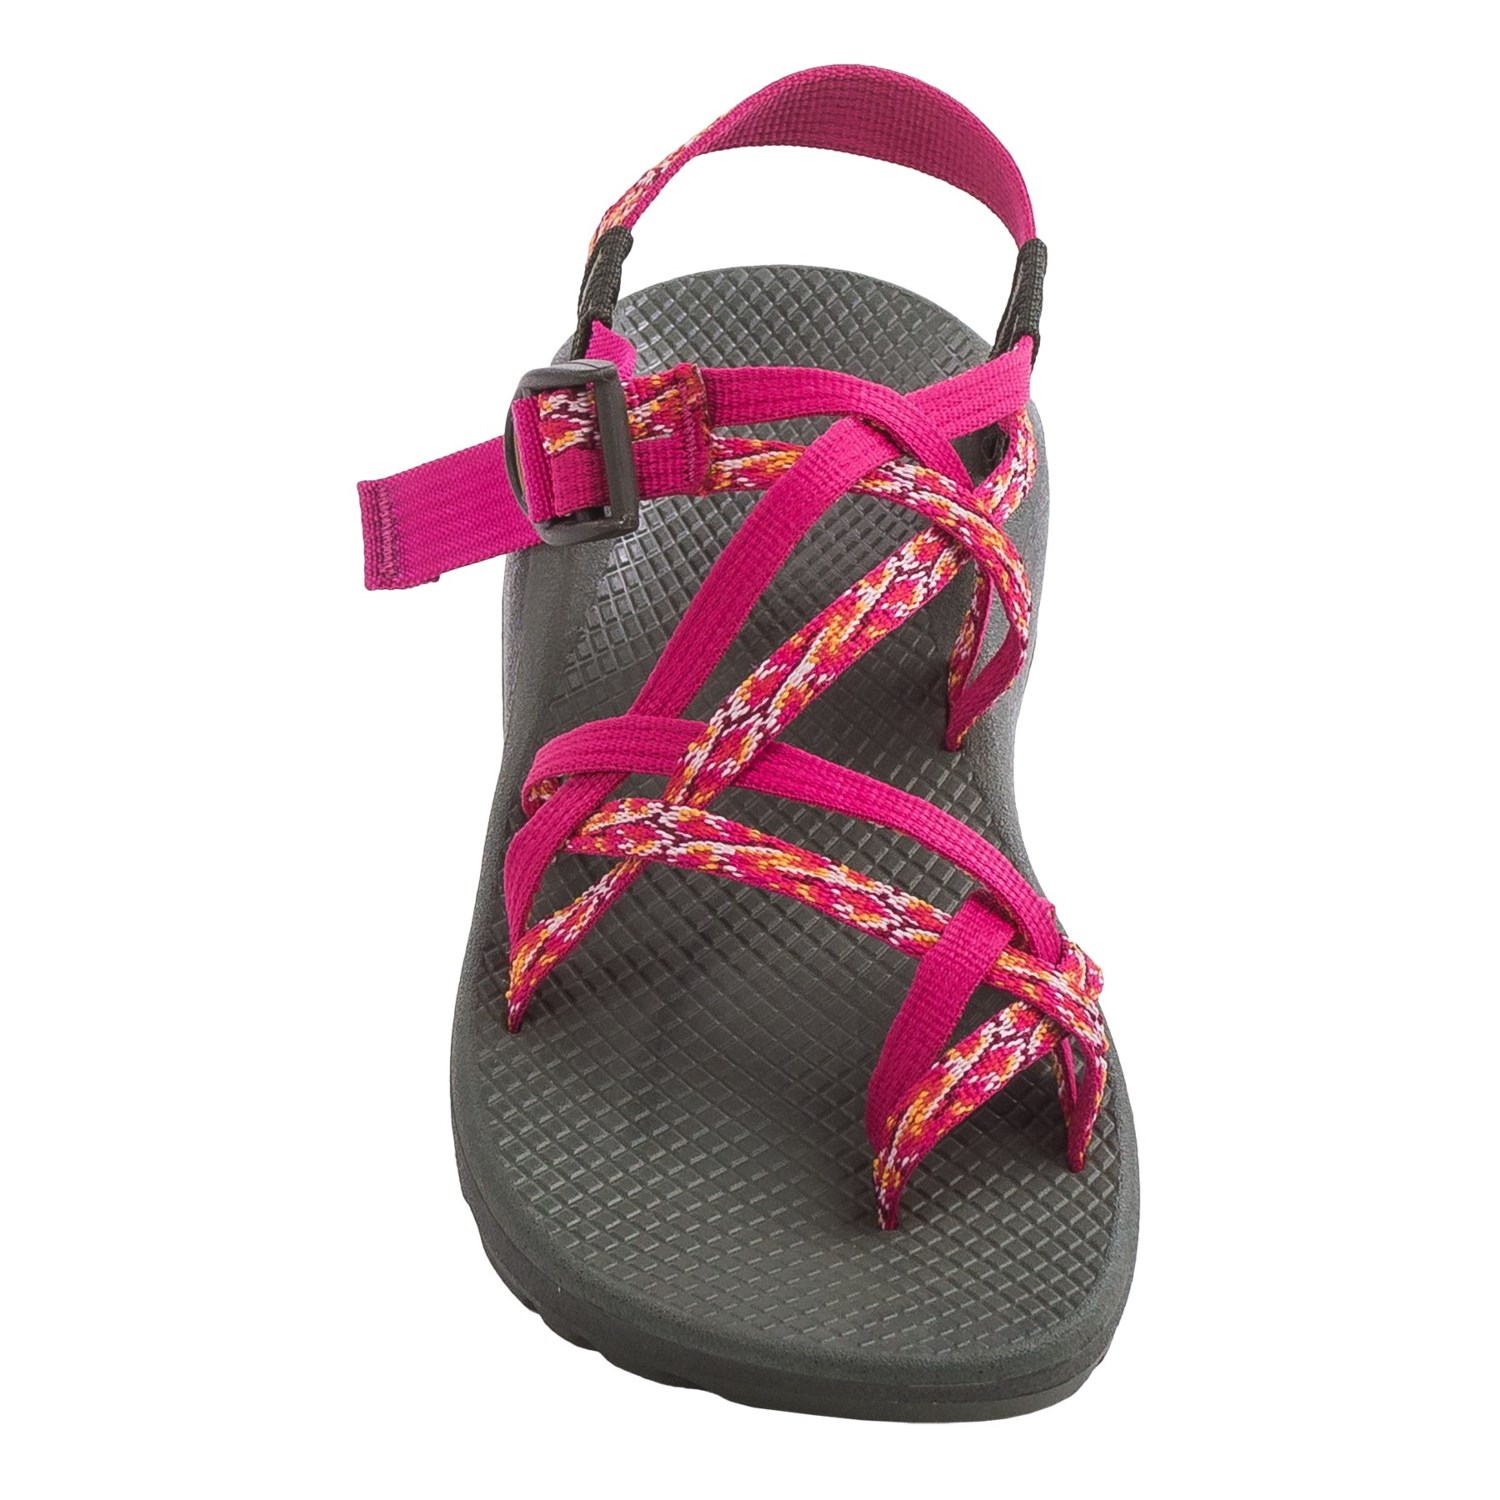 ecaaf0e8f9b2 Chaco Z Cloud X2 Sport Sandals (For Women) - Save 45%